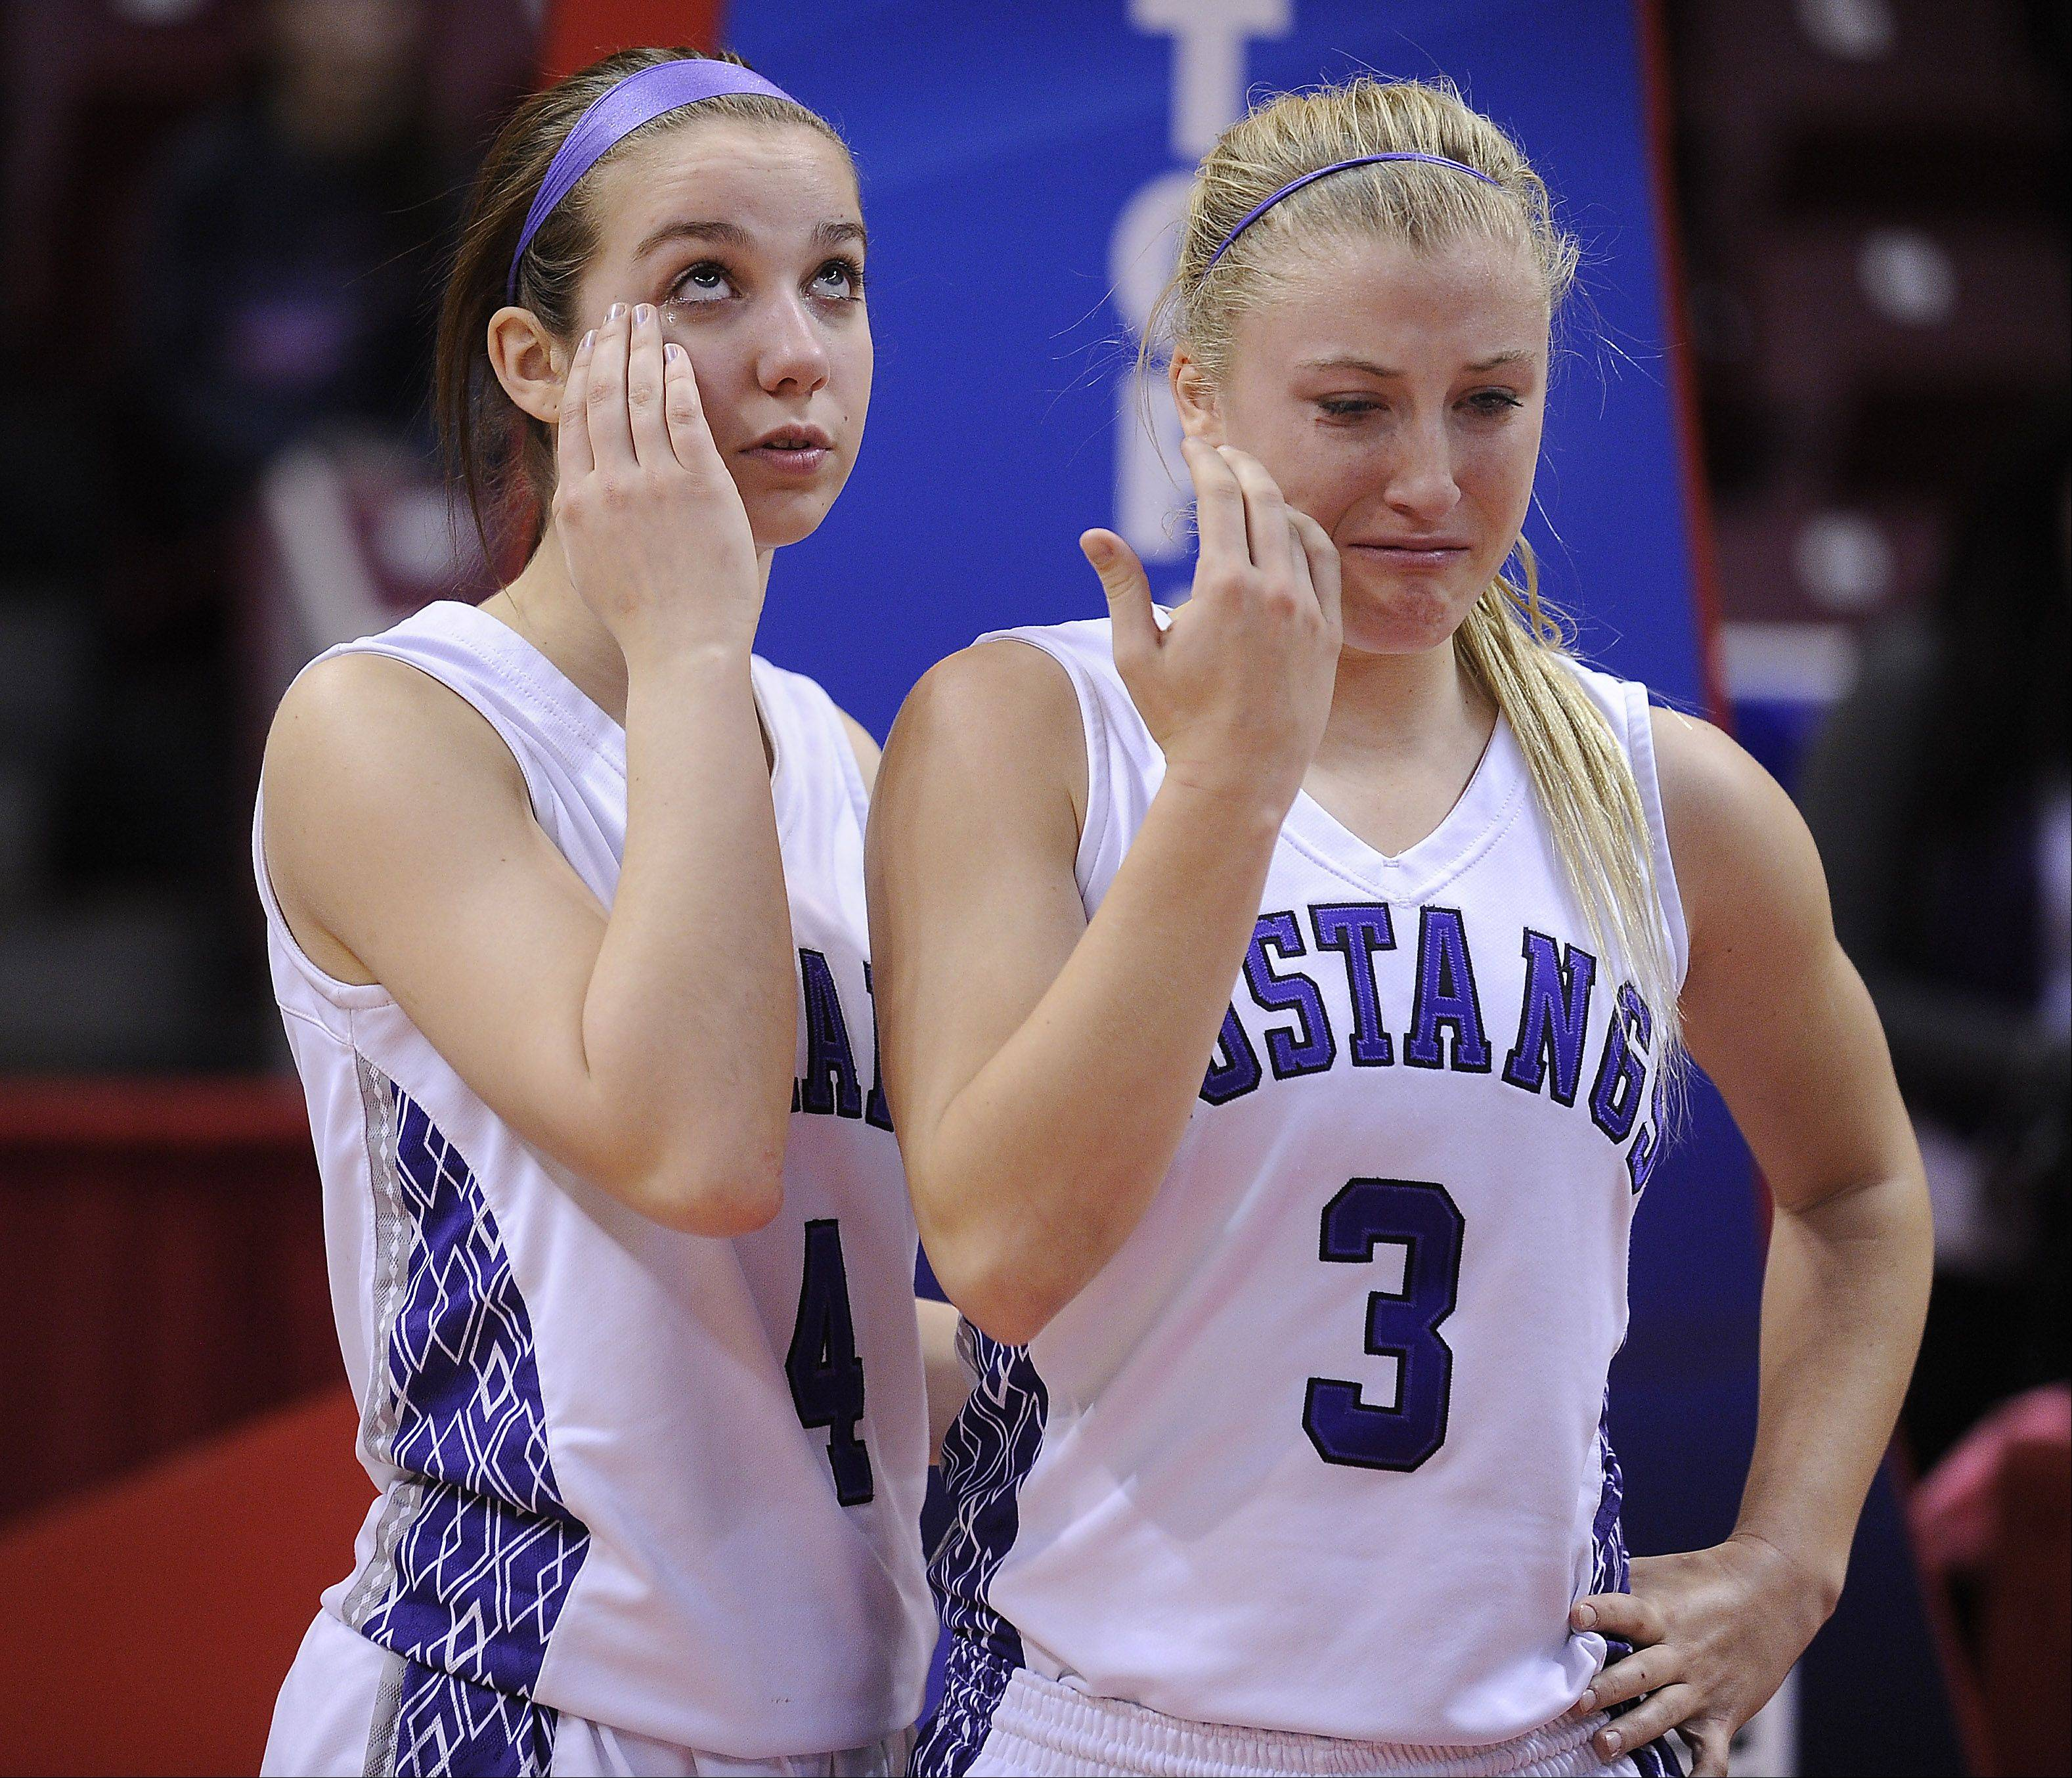 Rolling Meadows Jackie Kemph (right) and teammate Sami Kay feel the sting of getting beat by buzzer beater shot by Marian in the final second in the Class 4A 2013 girls basketball championship game in Normal on Saturday.